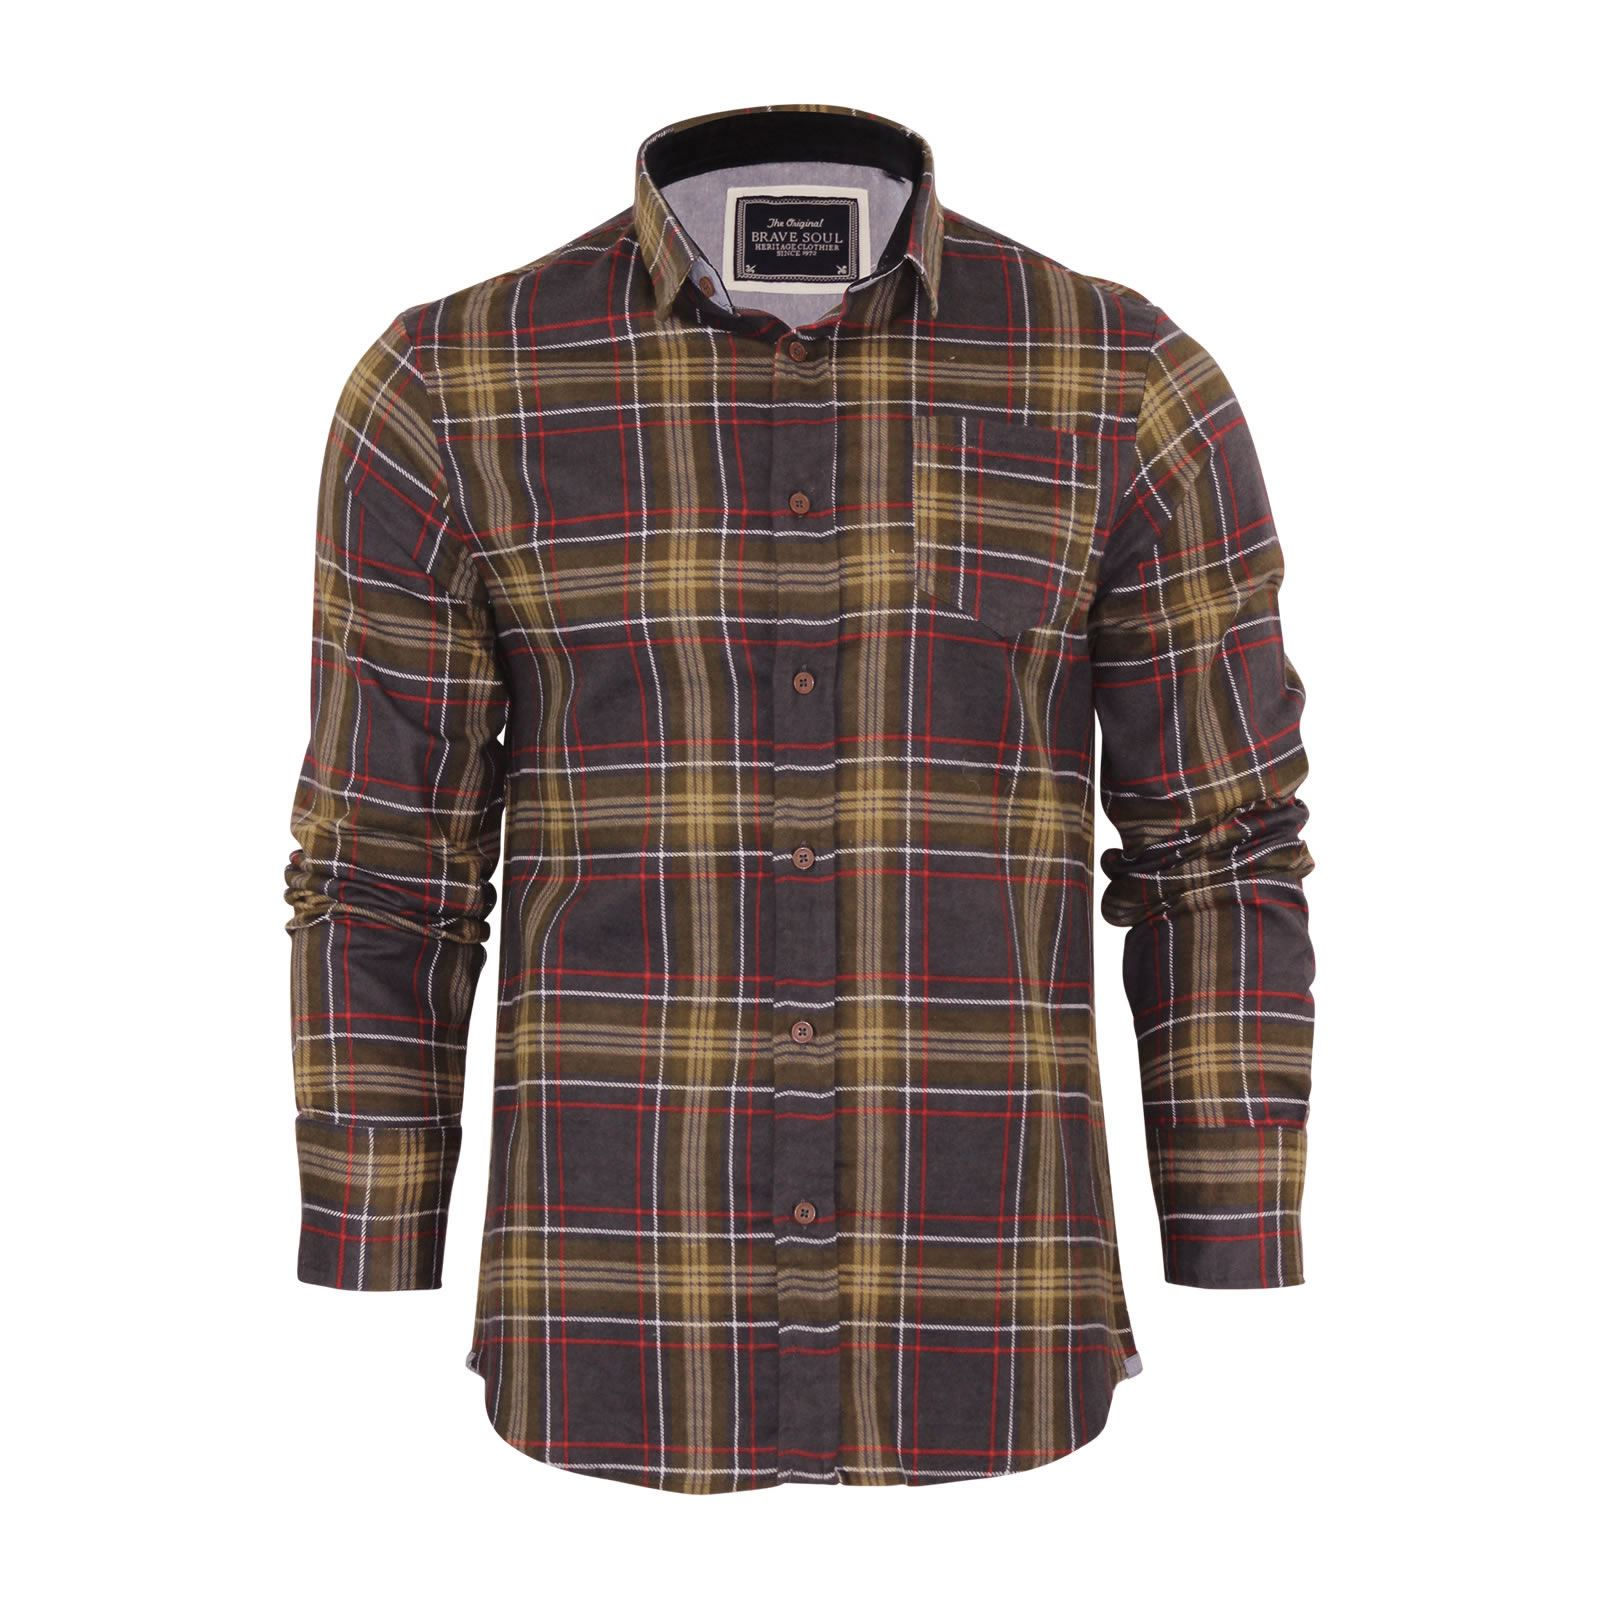 Brave-Soul-Mens-Check-Shirt-Flannel-Brushed-Cotton-Long-Sleeve-Casual-Top thumbnail 23